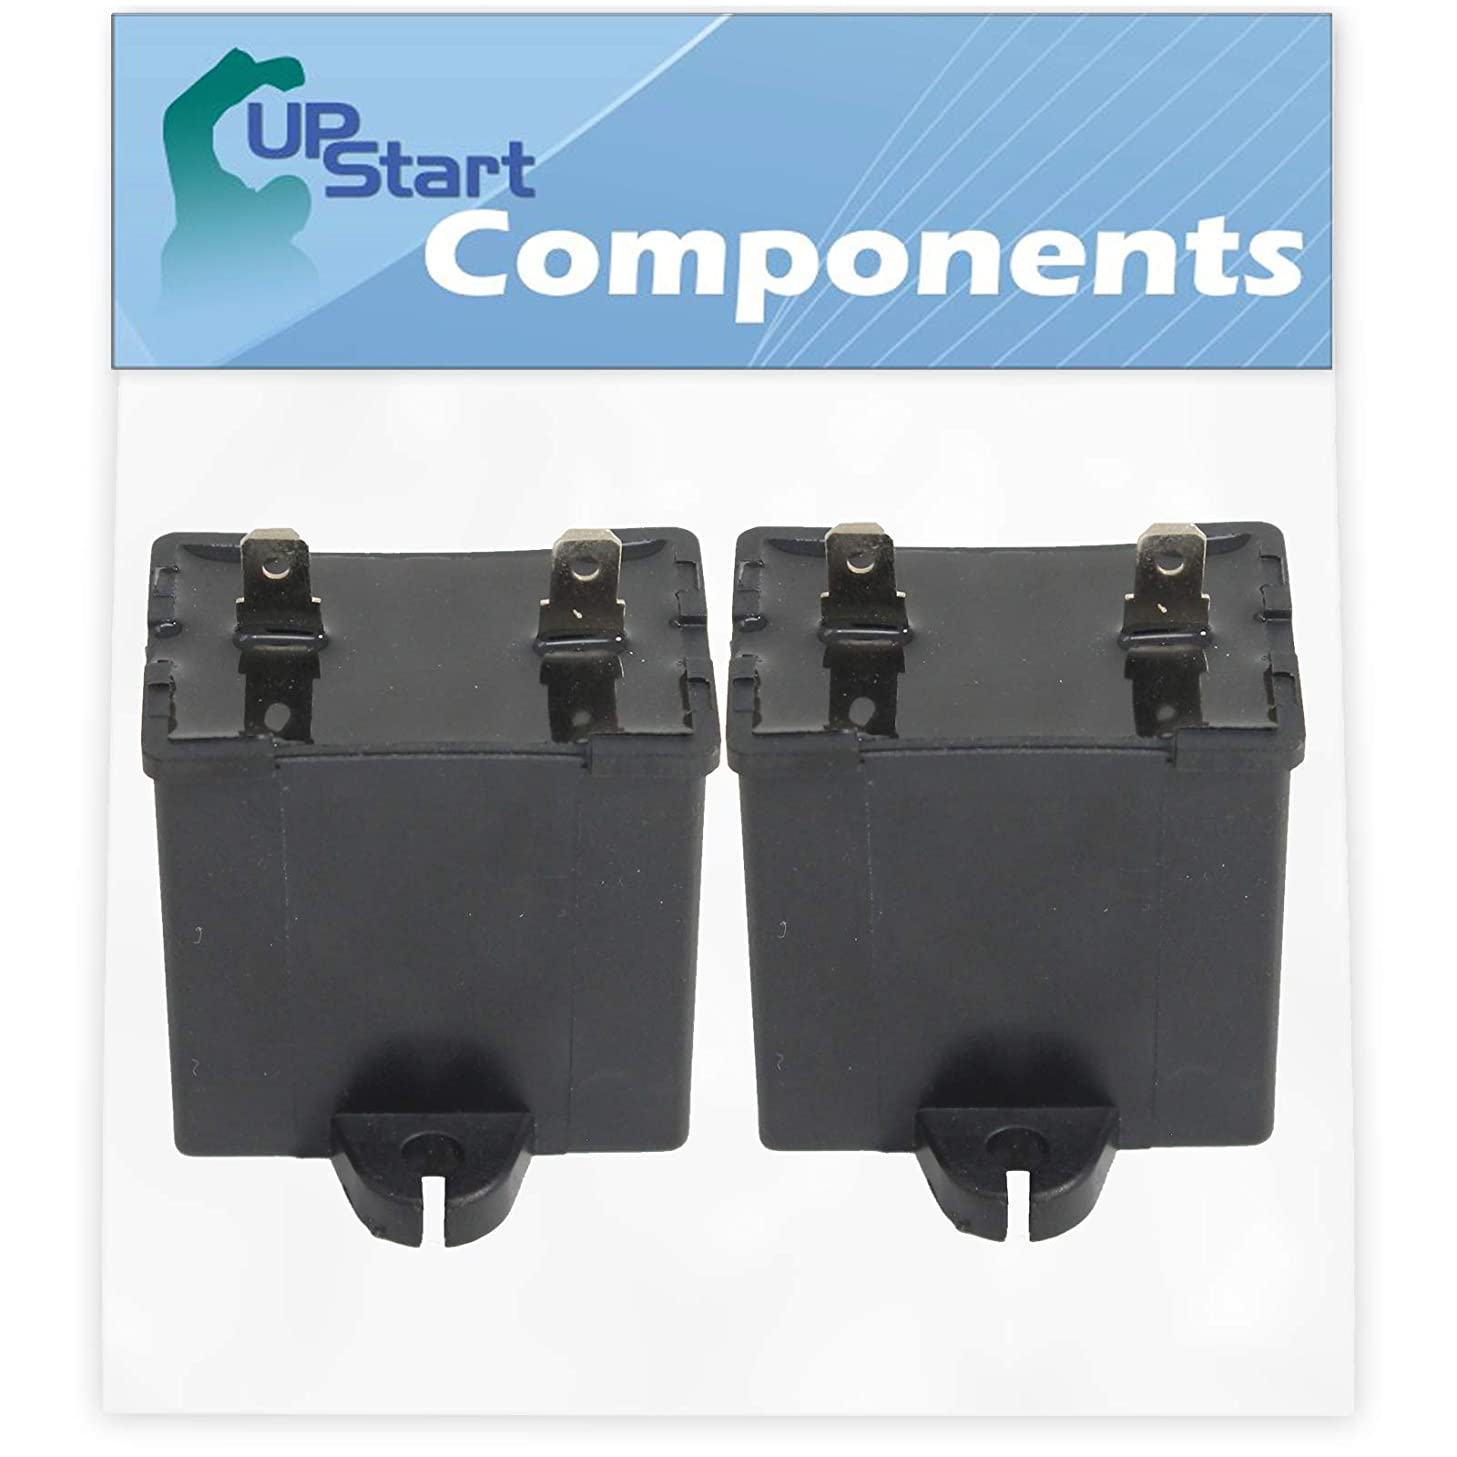 2-Pack W10662129 Refrigerator and Freezer Compressor Run Capacitor Replacement for Kenmore/Sears 10672154110 Refrigerator - Compatible with 2169373 WPW10662129 Run Capacitor